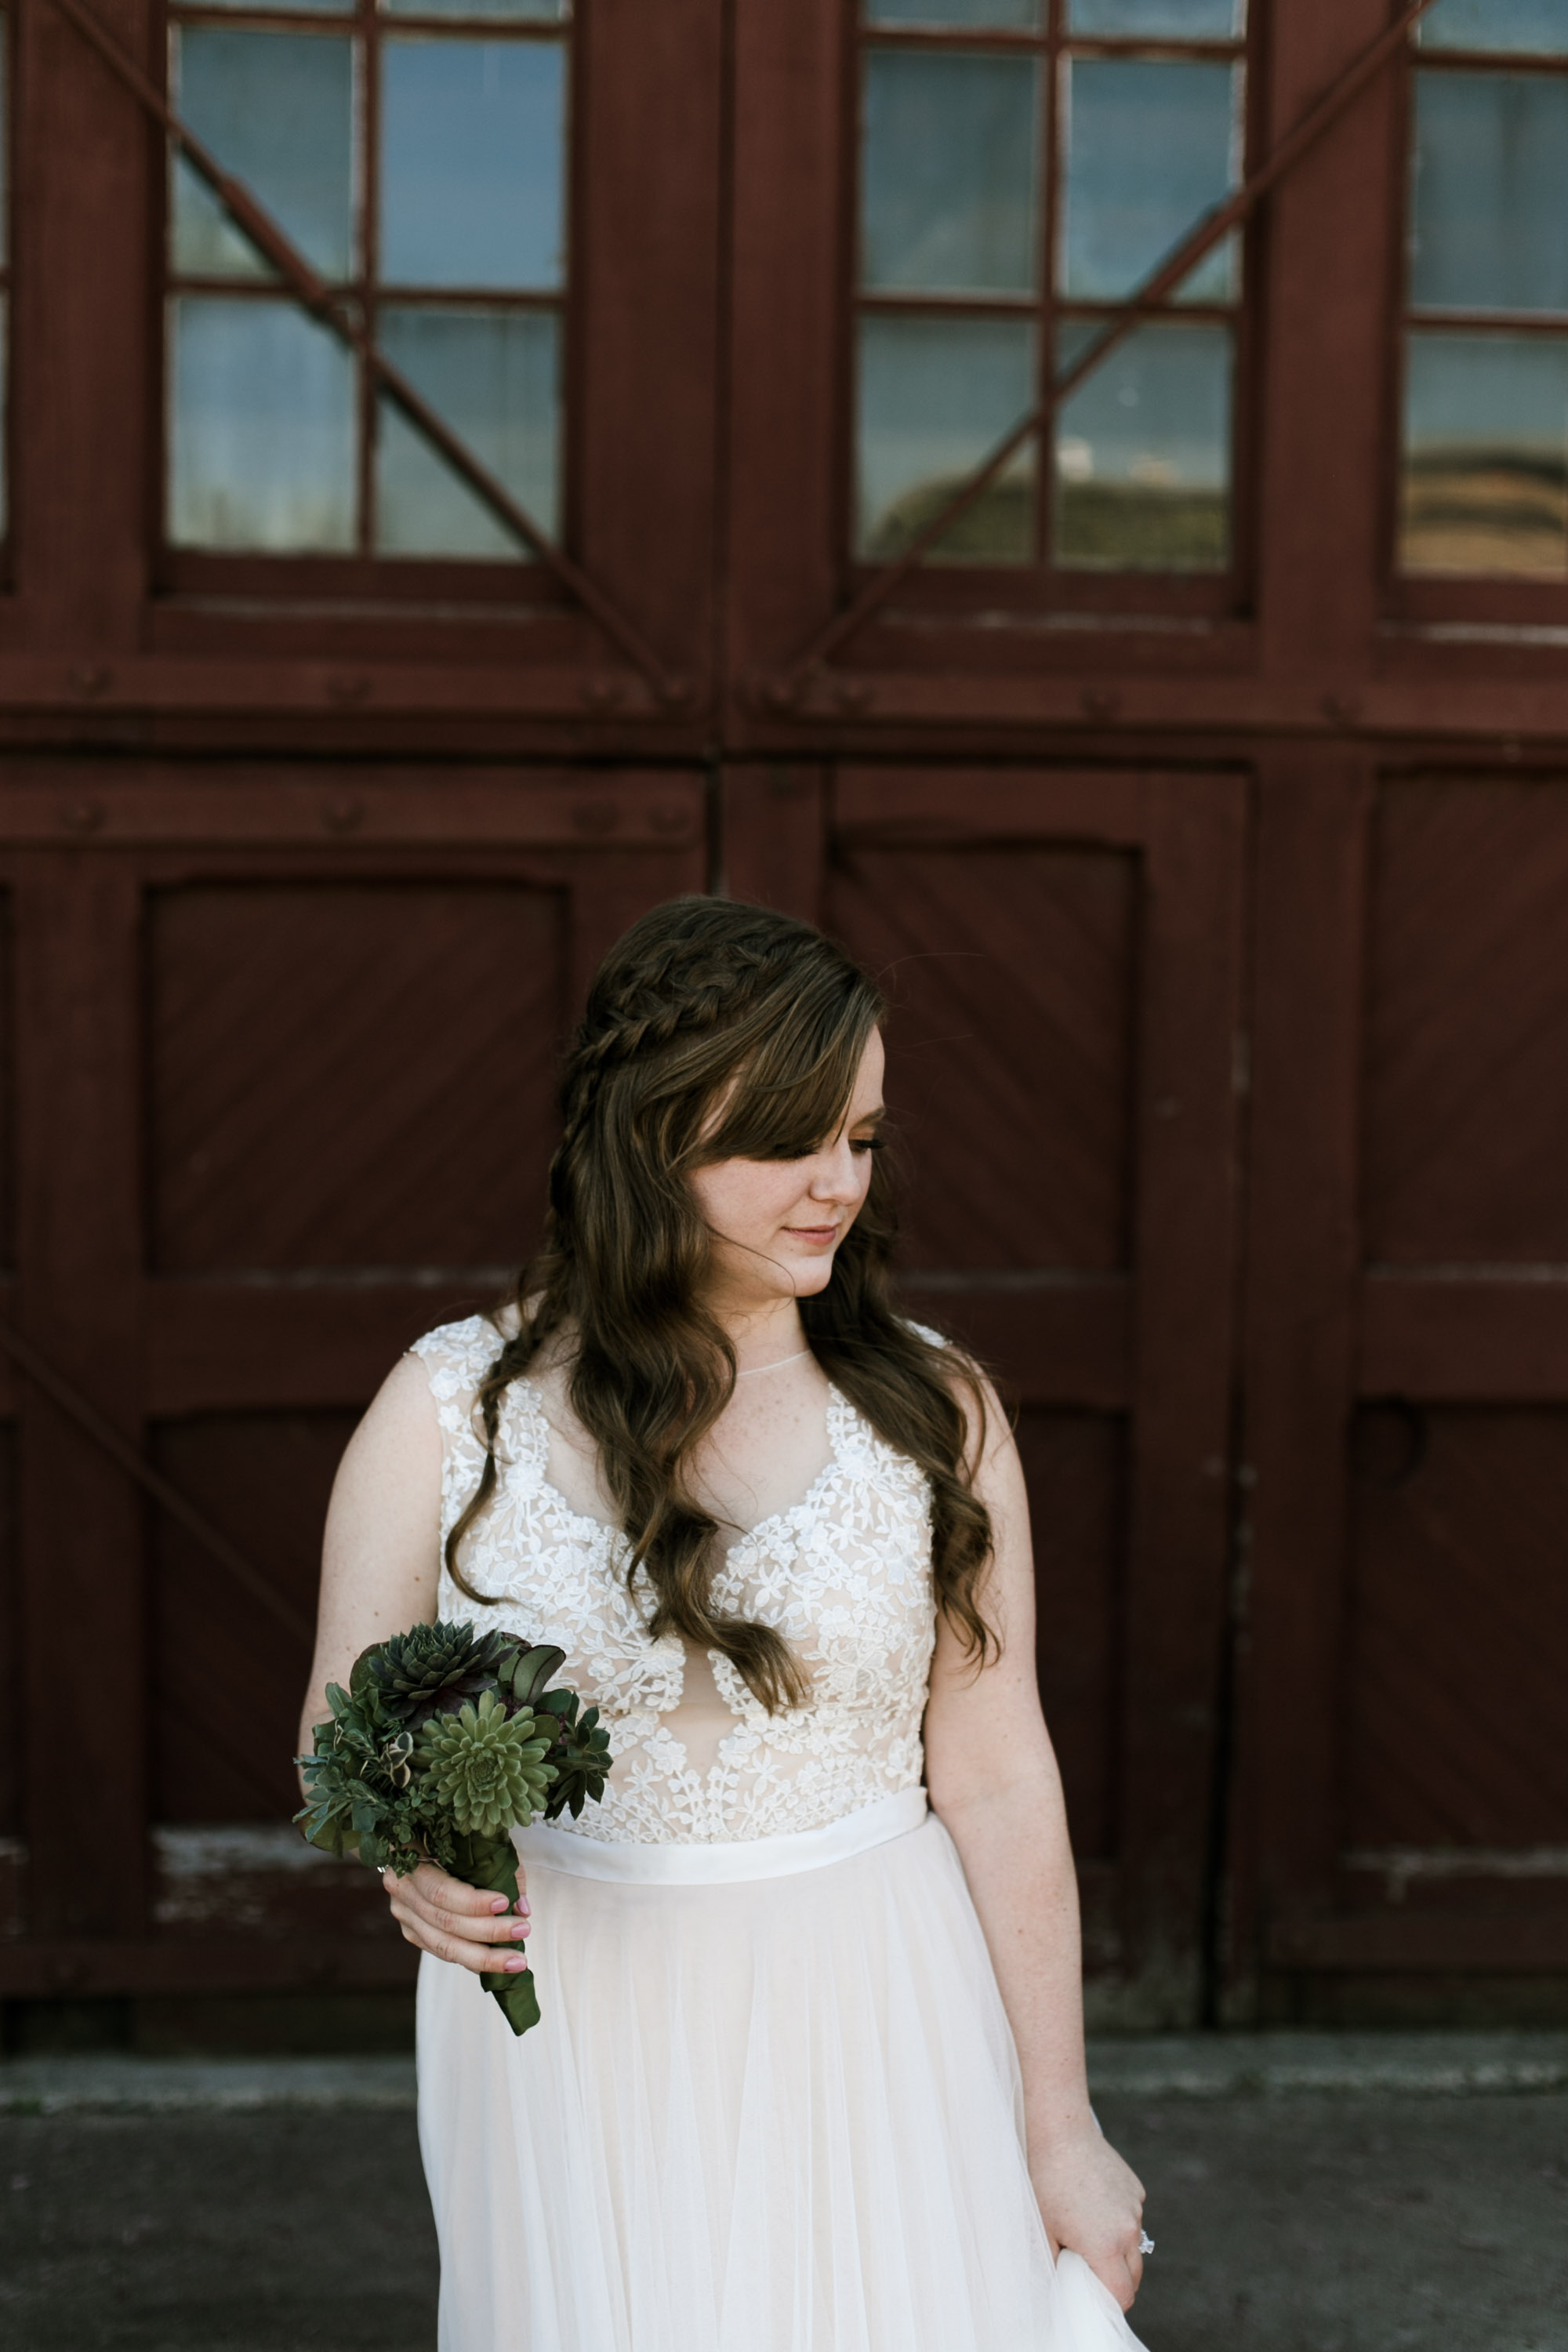 Boho chic wedding at industrial warehouse. Photography by Britt DeZeeuw, NP Event Space photographer.